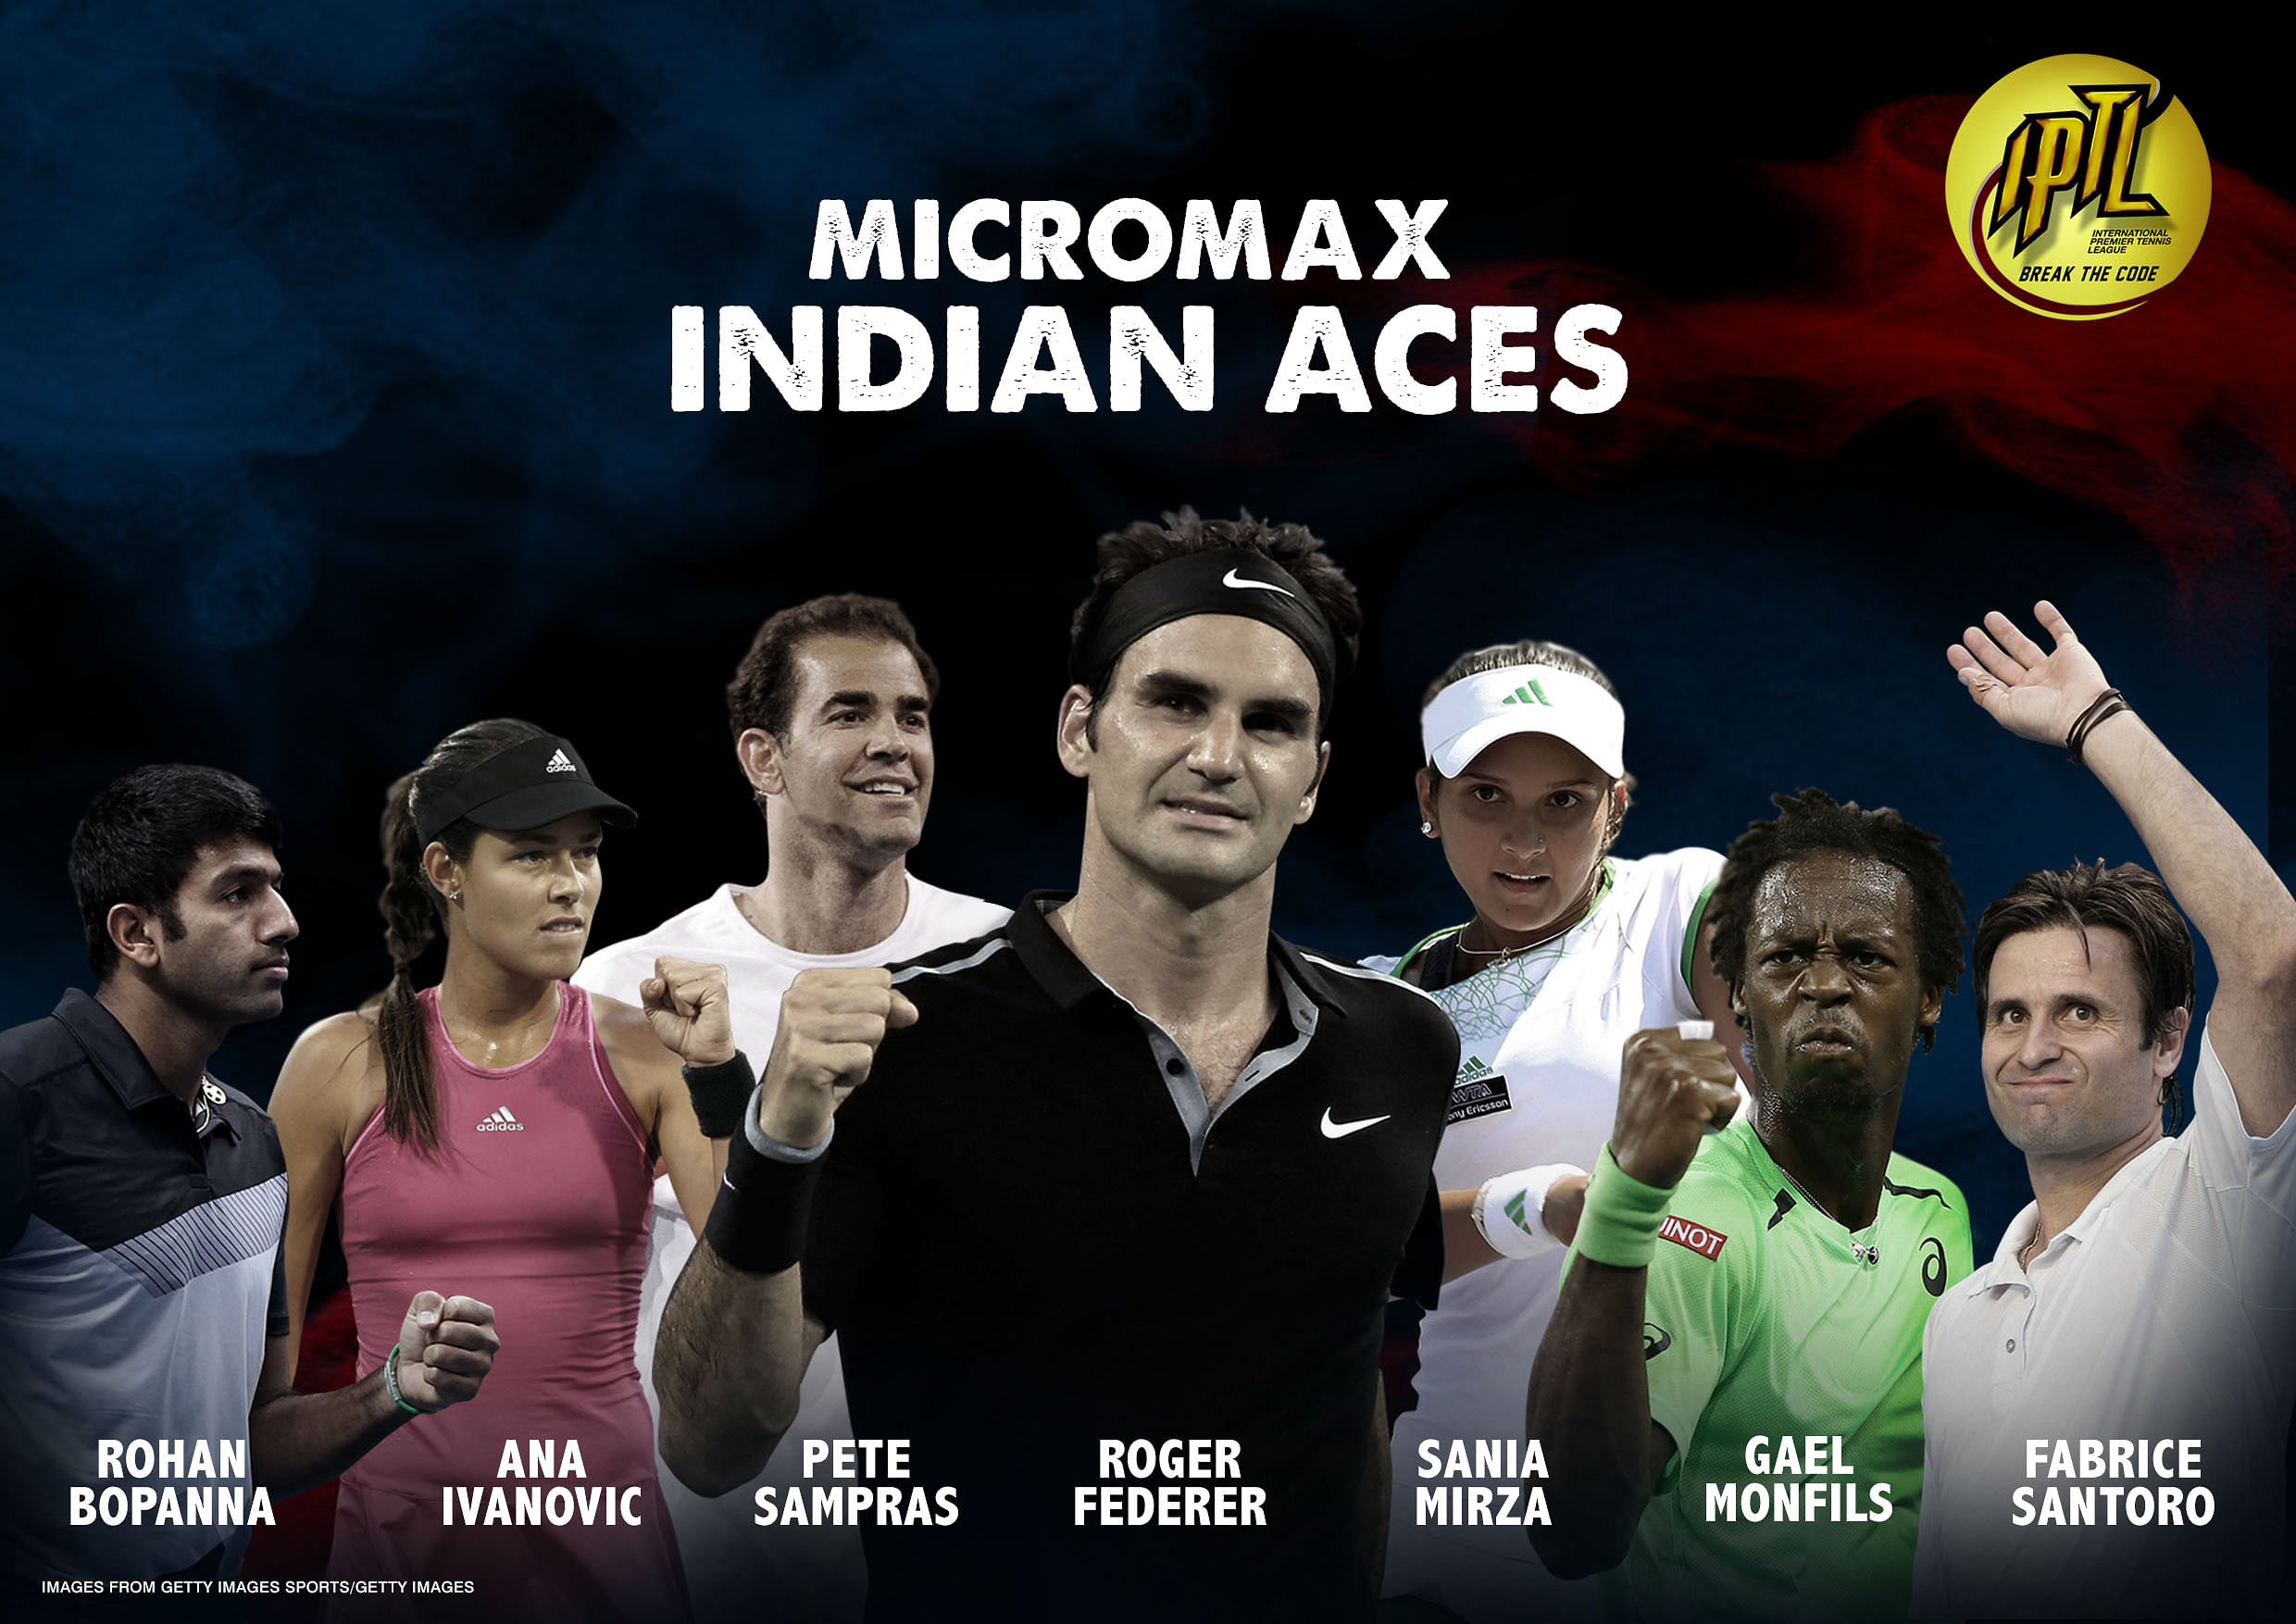 Roger Federer to lead Indian Aces at International Premier Tennis League